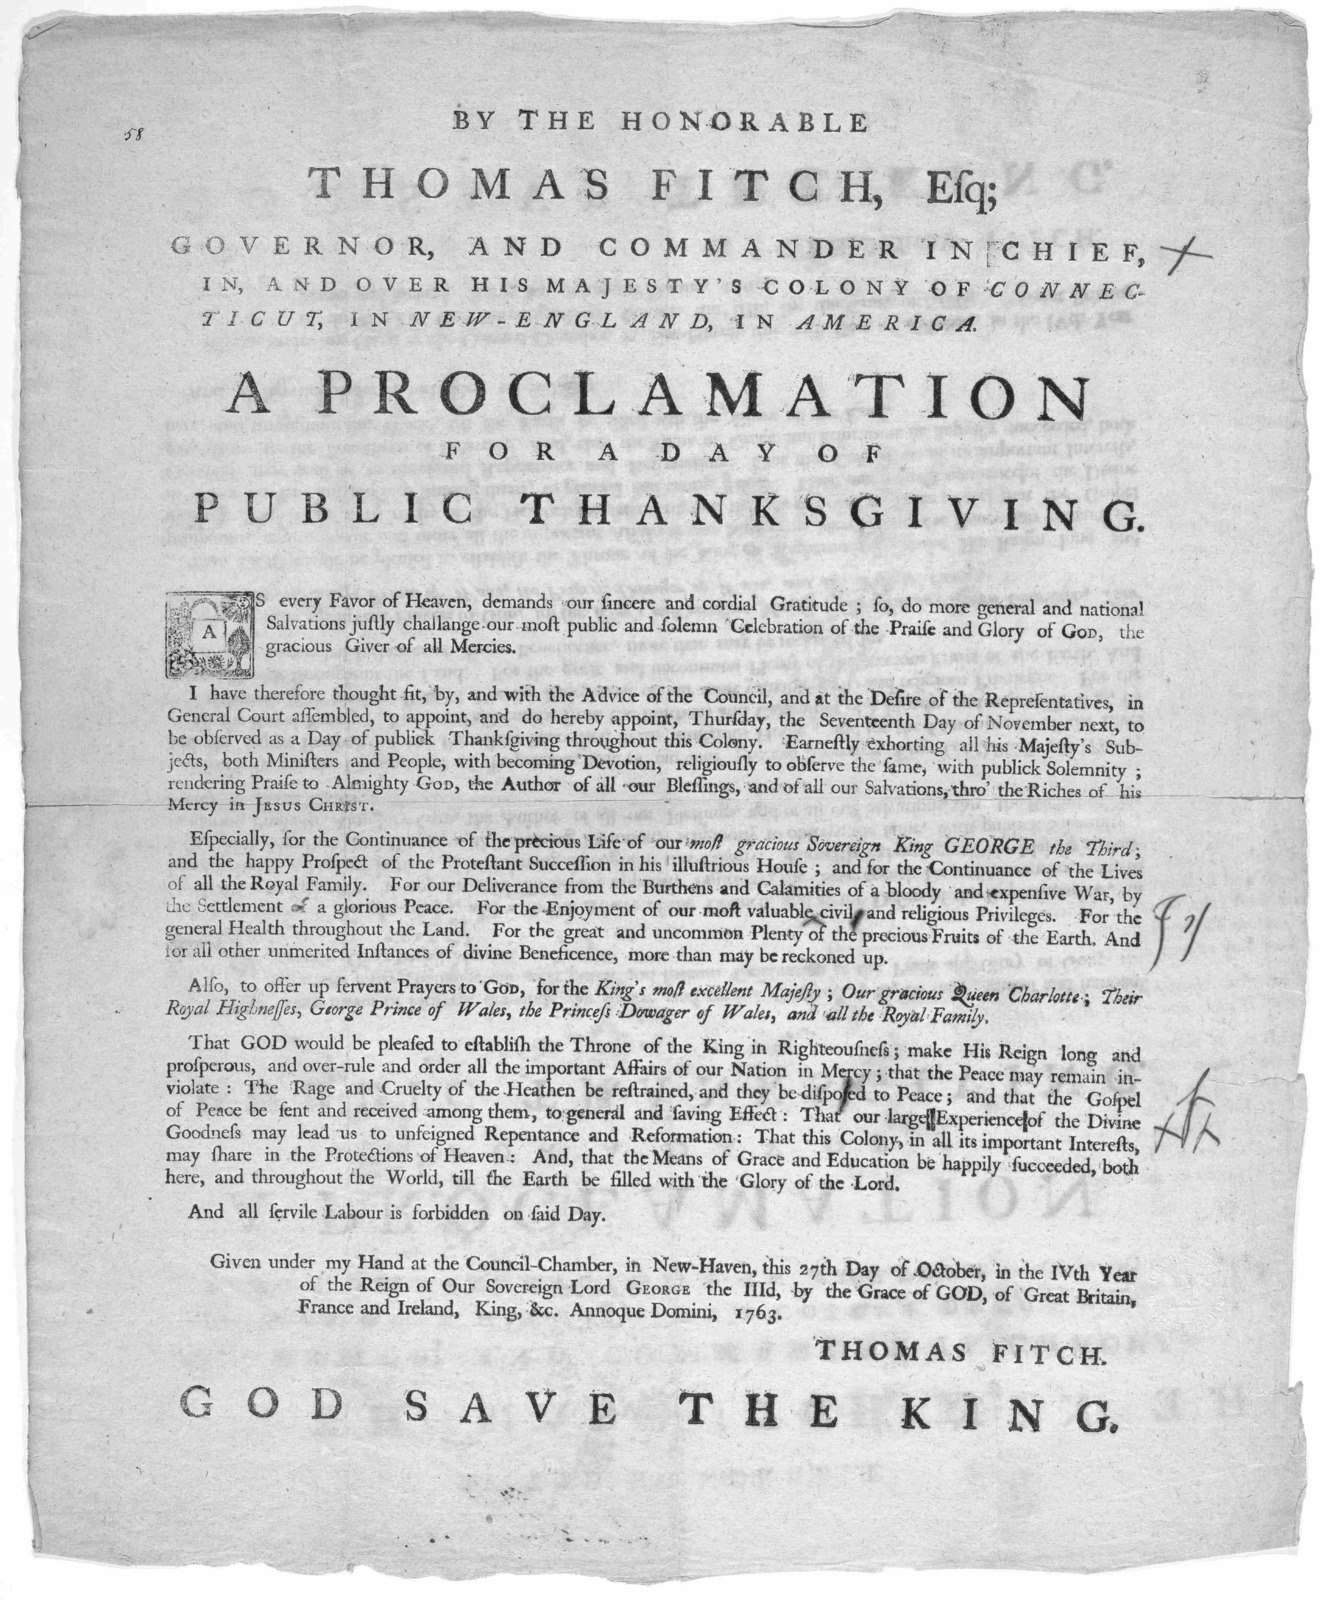 By the Honorable Thomas Fitch, esq; Governor, and commander in chief, in and over His Majesty's Colony of Connecticut, in New-England, in America. A proclamation for a day of public thanksgiving ... Thomas Fitch. God save the king. [New-Haven: P